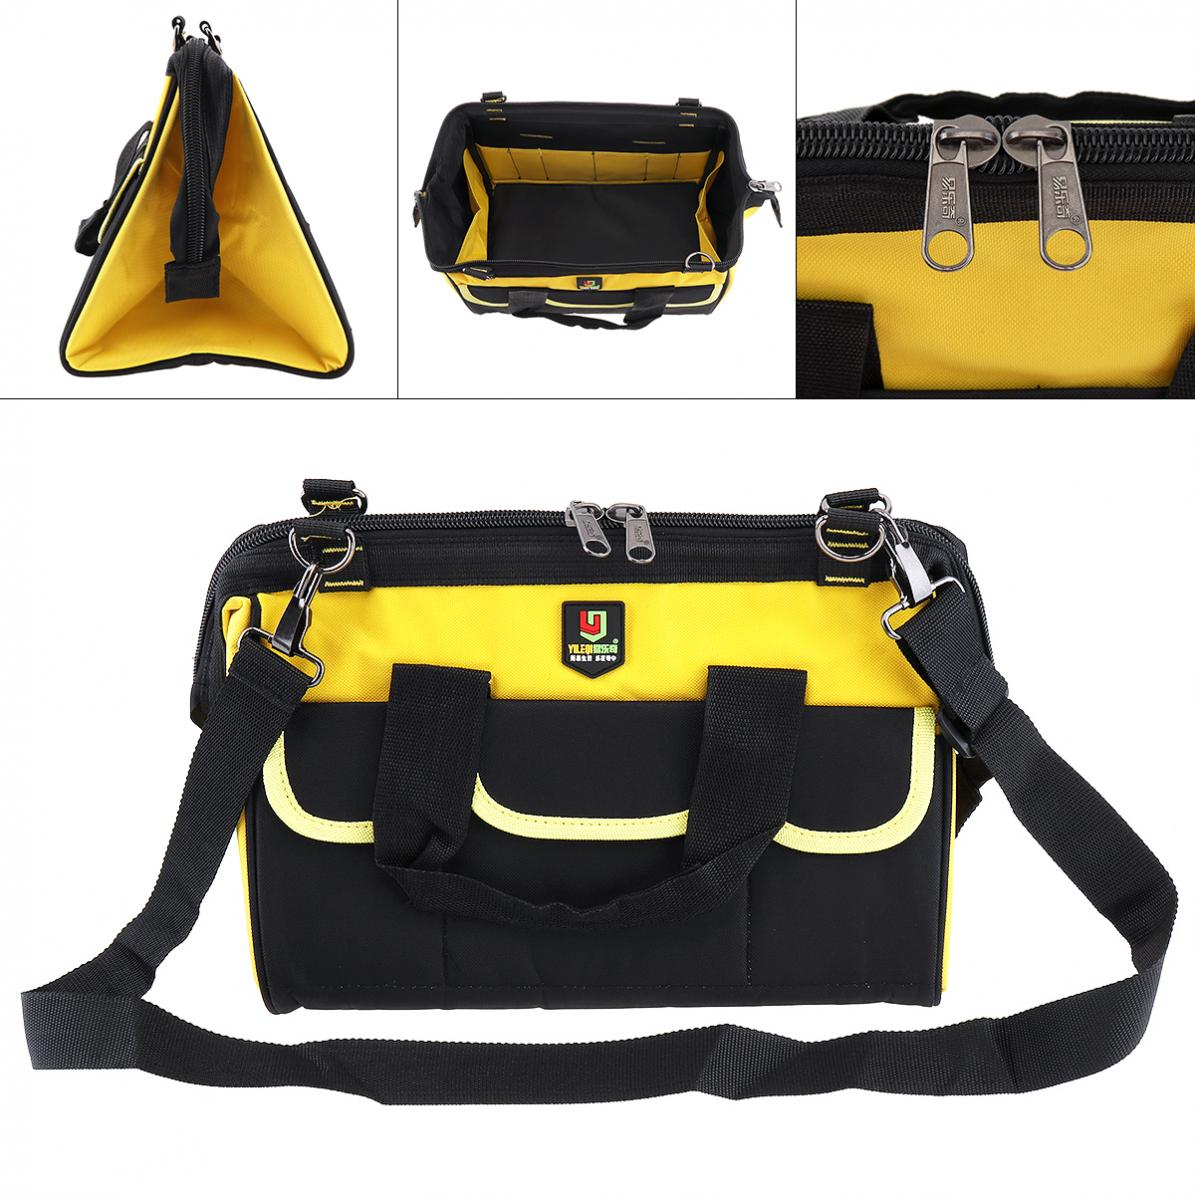 14 Inch Tool Bags Oxford Cloth Package Waterproof Hand Shoulder Dual-purpose Tool Bag With 18 Pockets For Maintenance Tools